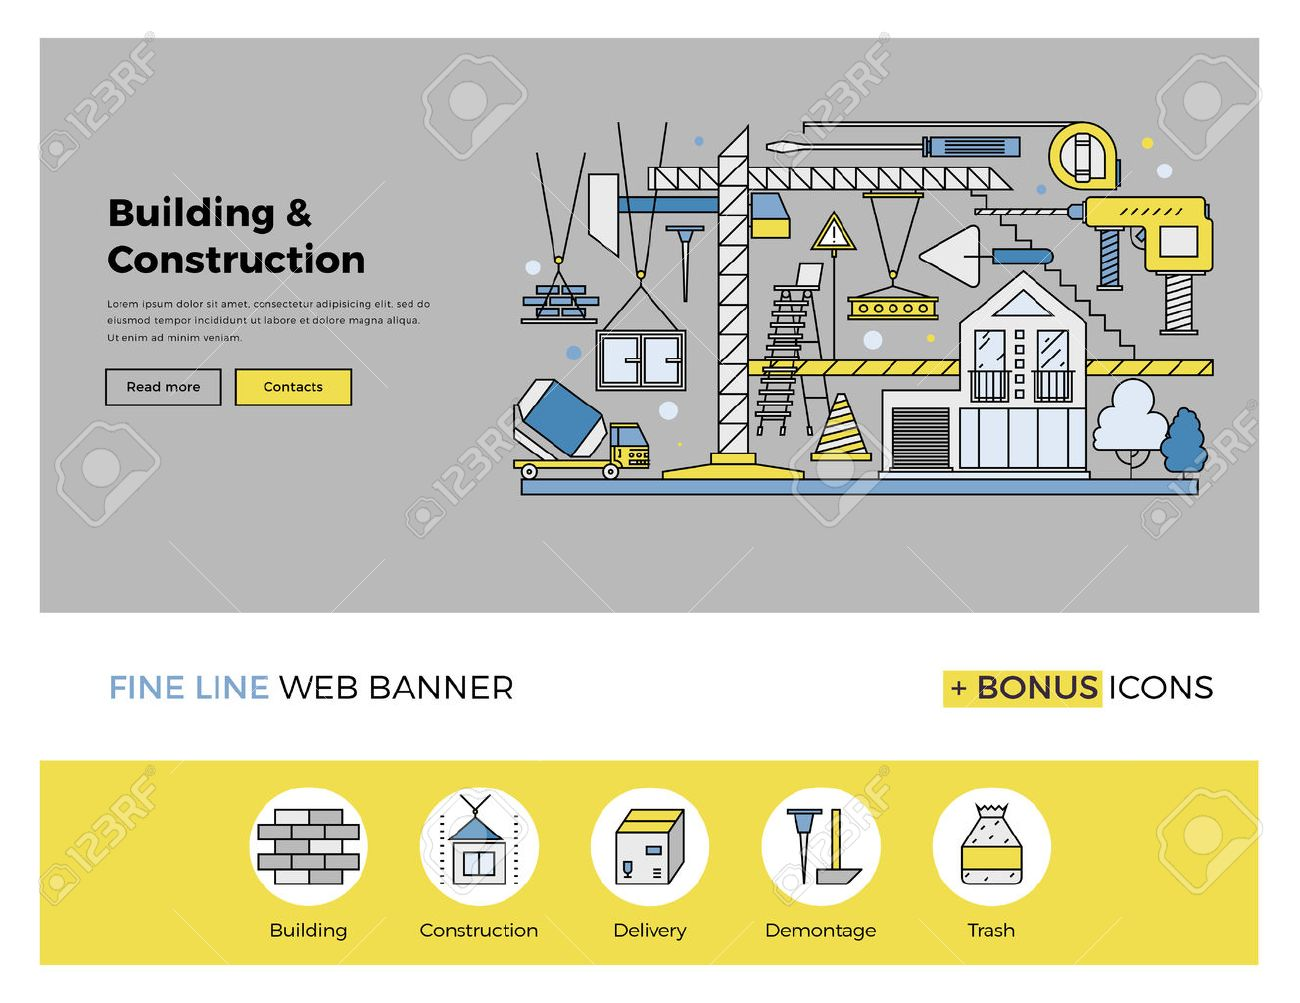 Flat line design of web banner template with outline icons of building industry construction process, urban architecture work progress. Modern vector illustration concept for website or infographics. Stock Vector - 47210753